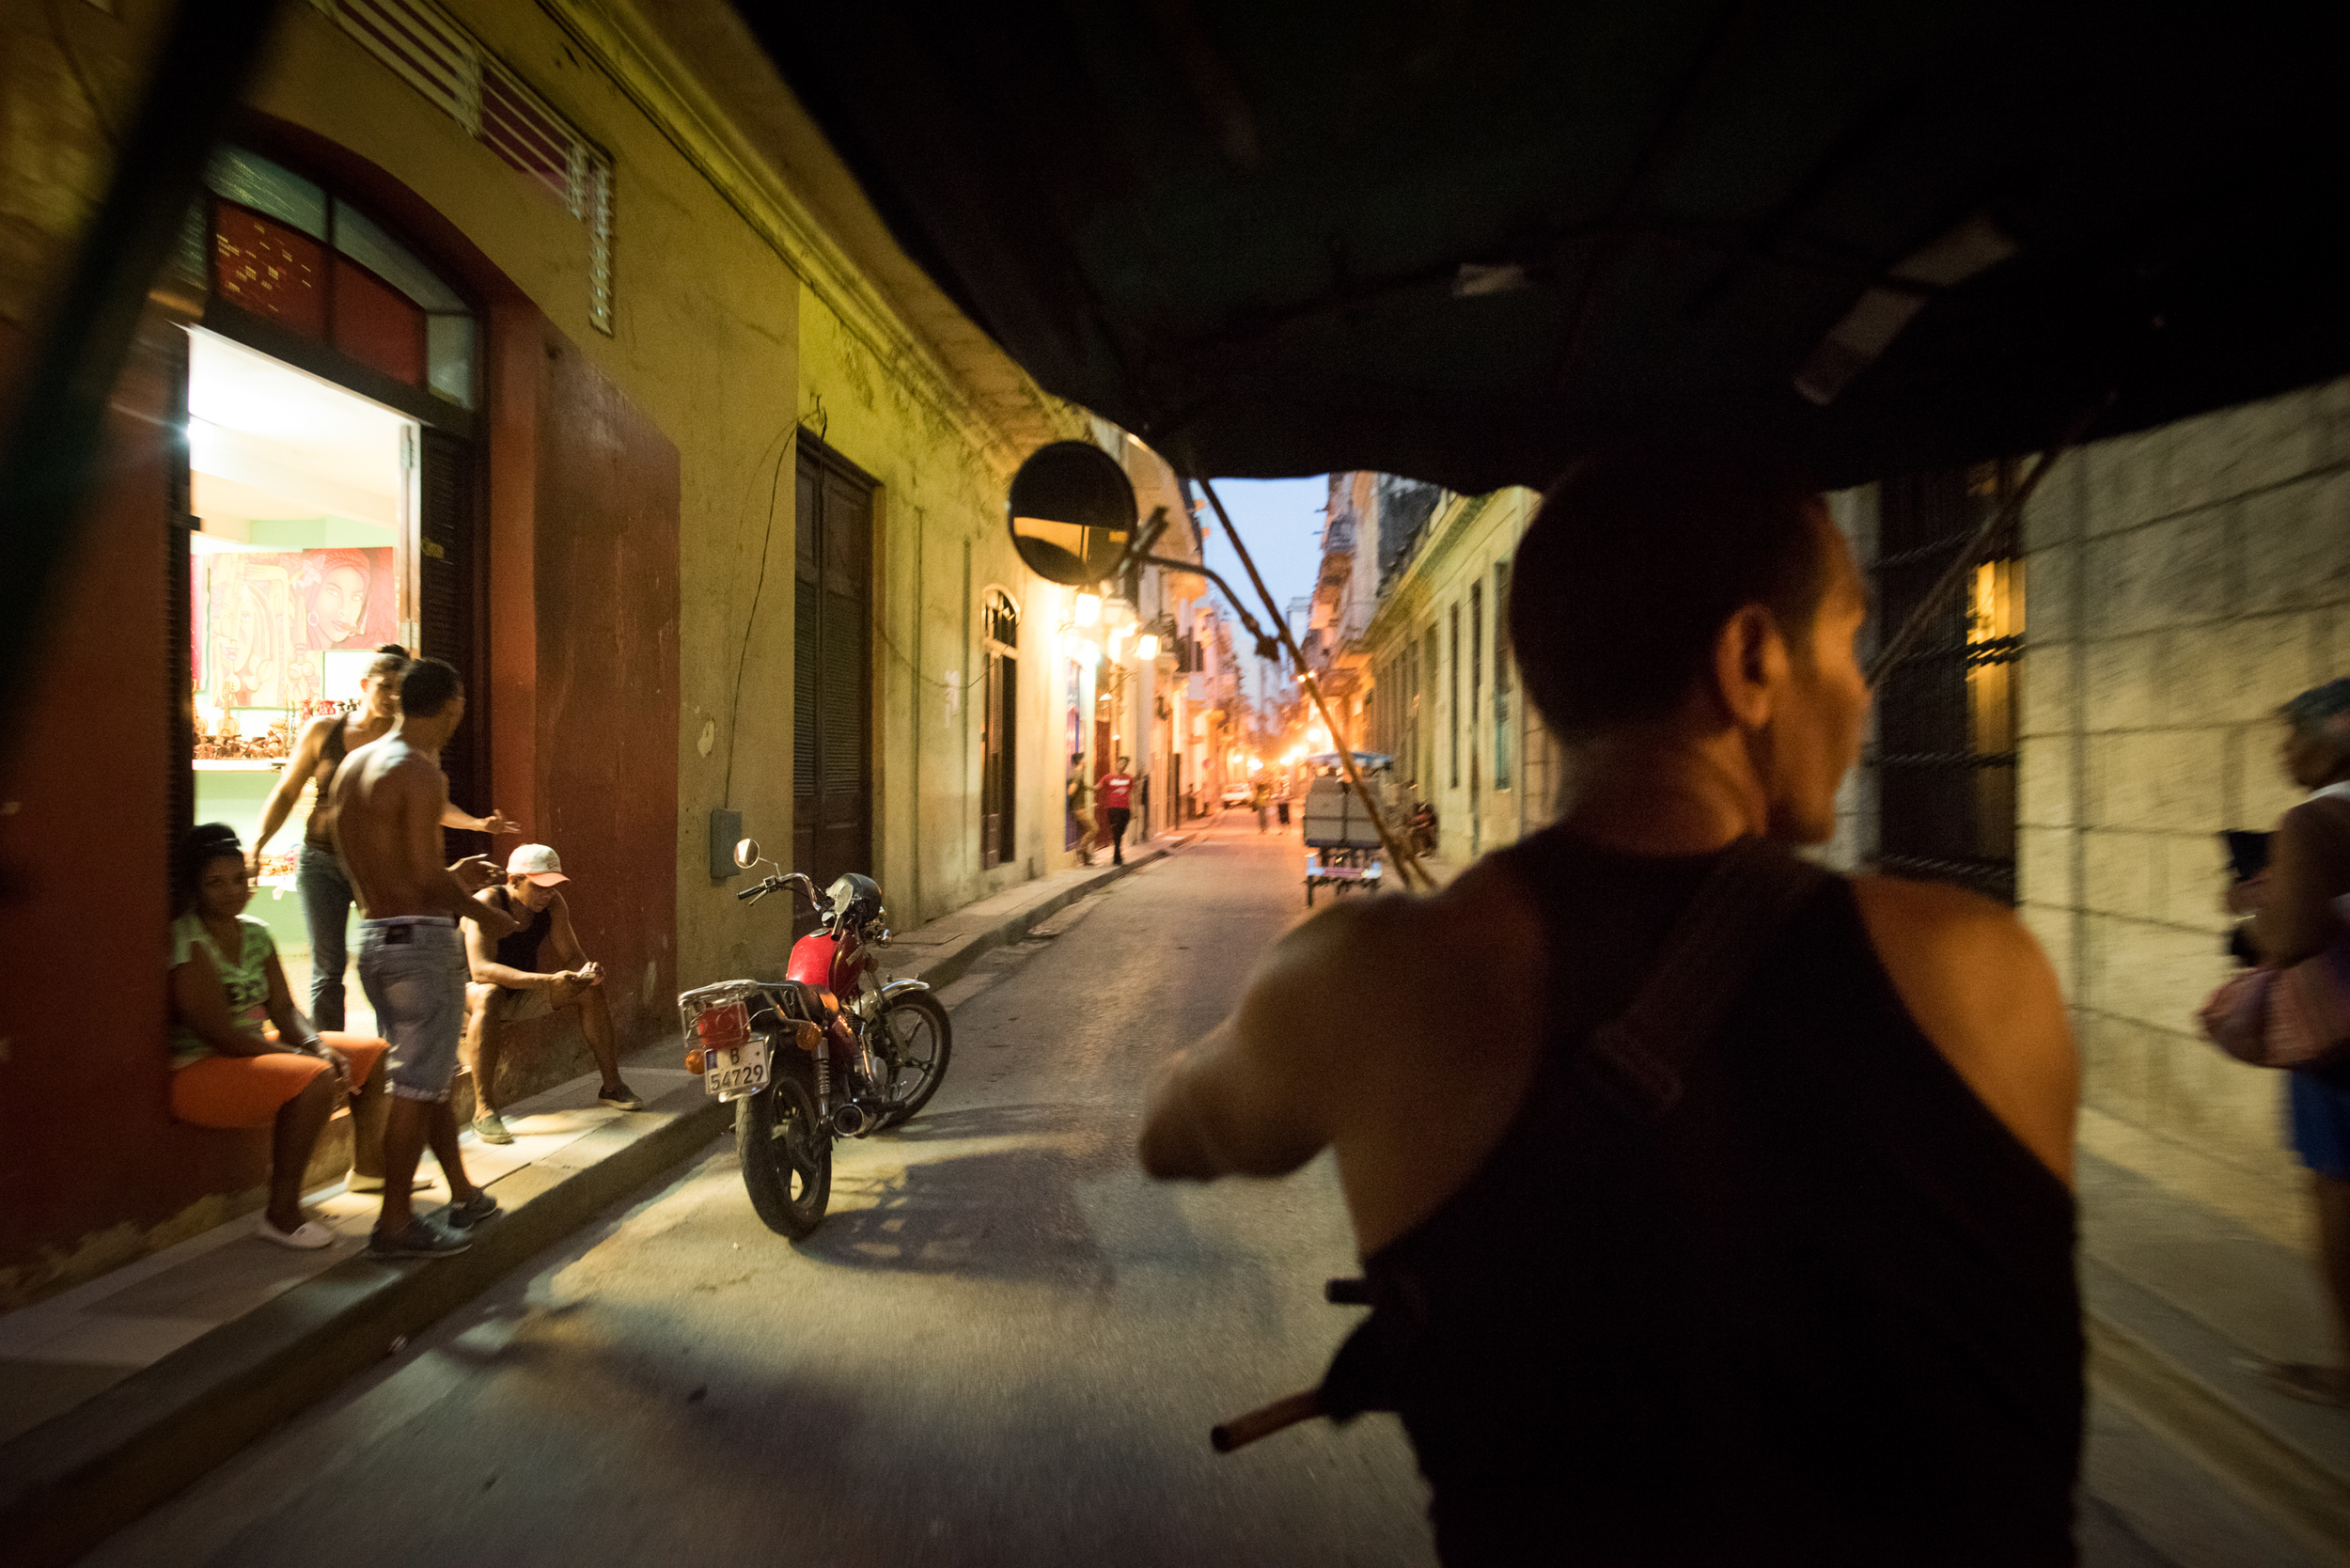 Riding through the streets of Old Havana in the back of a pedicab.